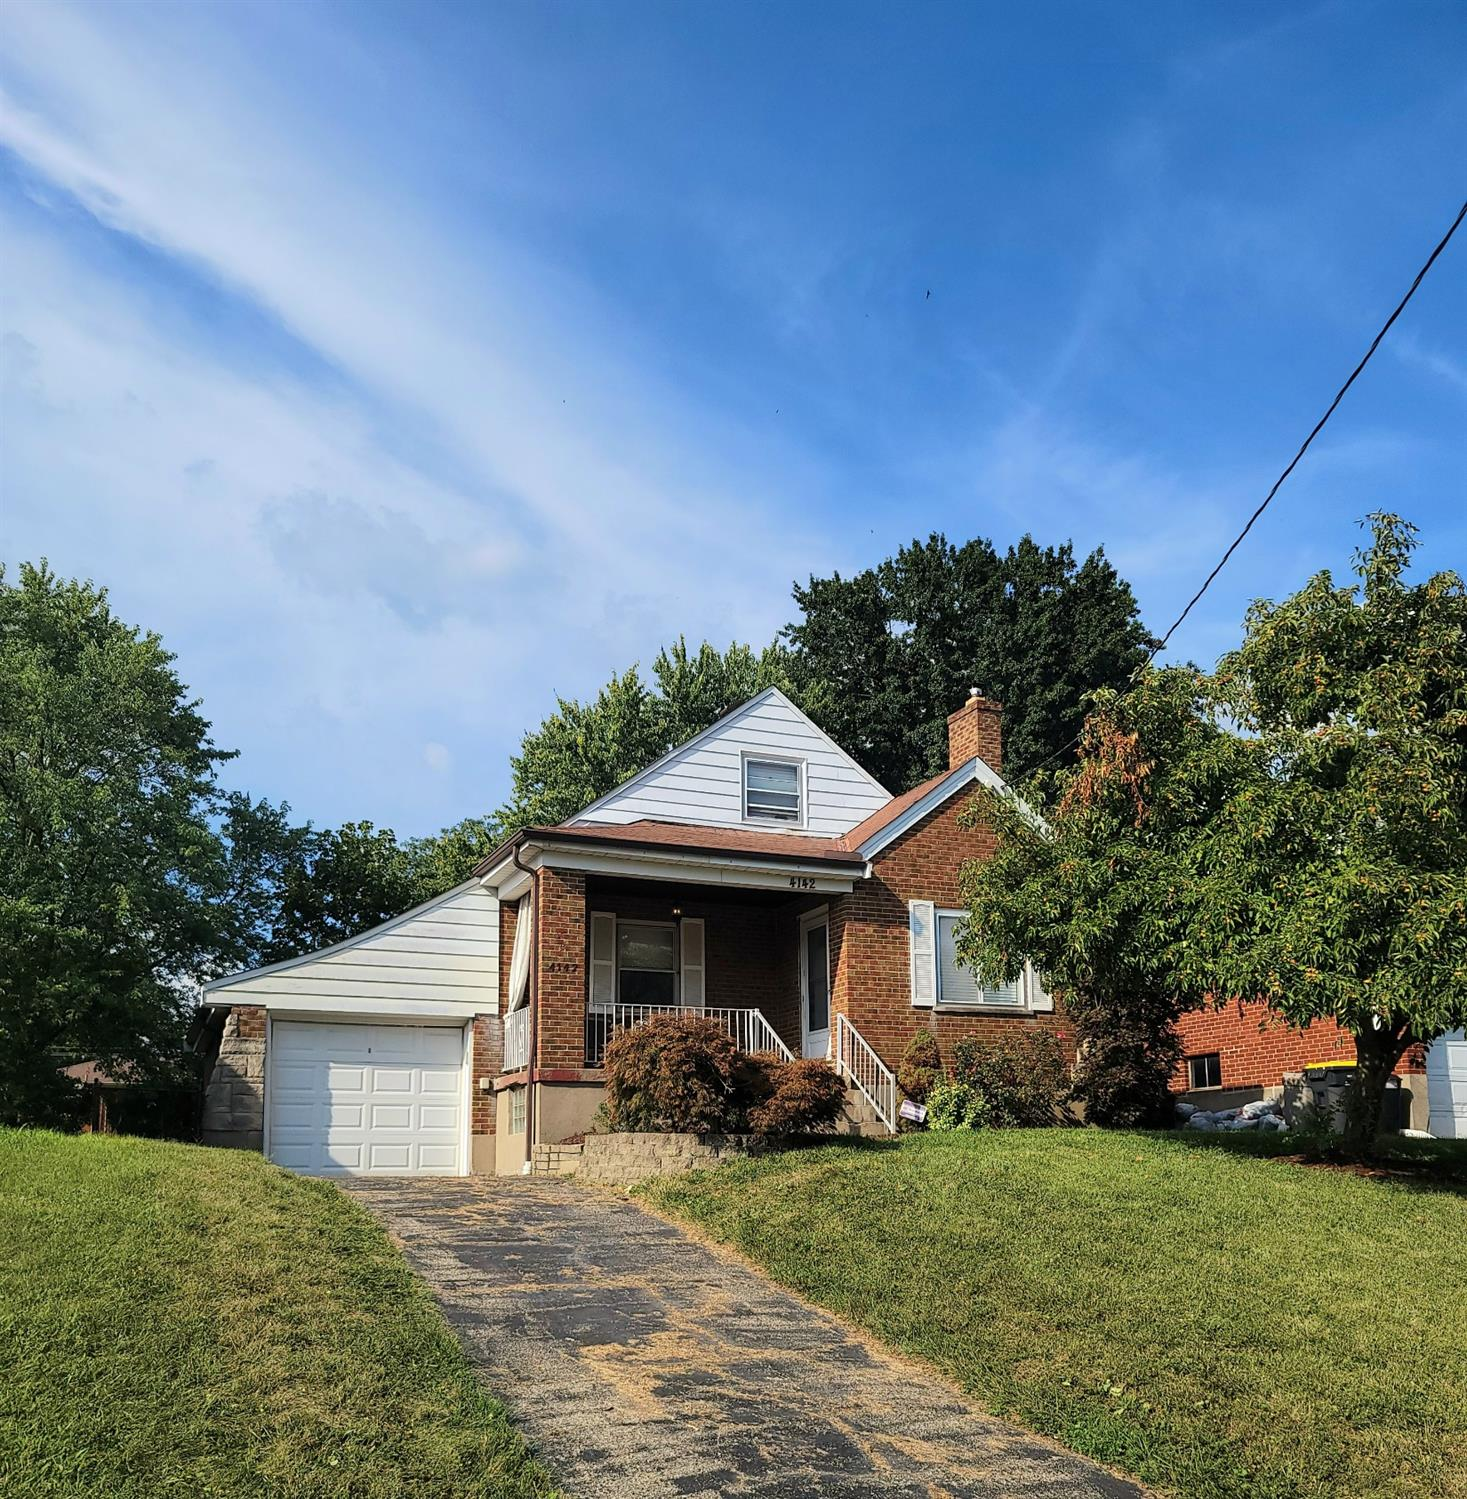 4142 Janward Drive, Cheviot, Ohio 45211, 3 Bedrooms Bedrooms, 7 Rooms Rooms,1 BathroomBathrooms,Single Family Residence,For Sale,Janward,1713156